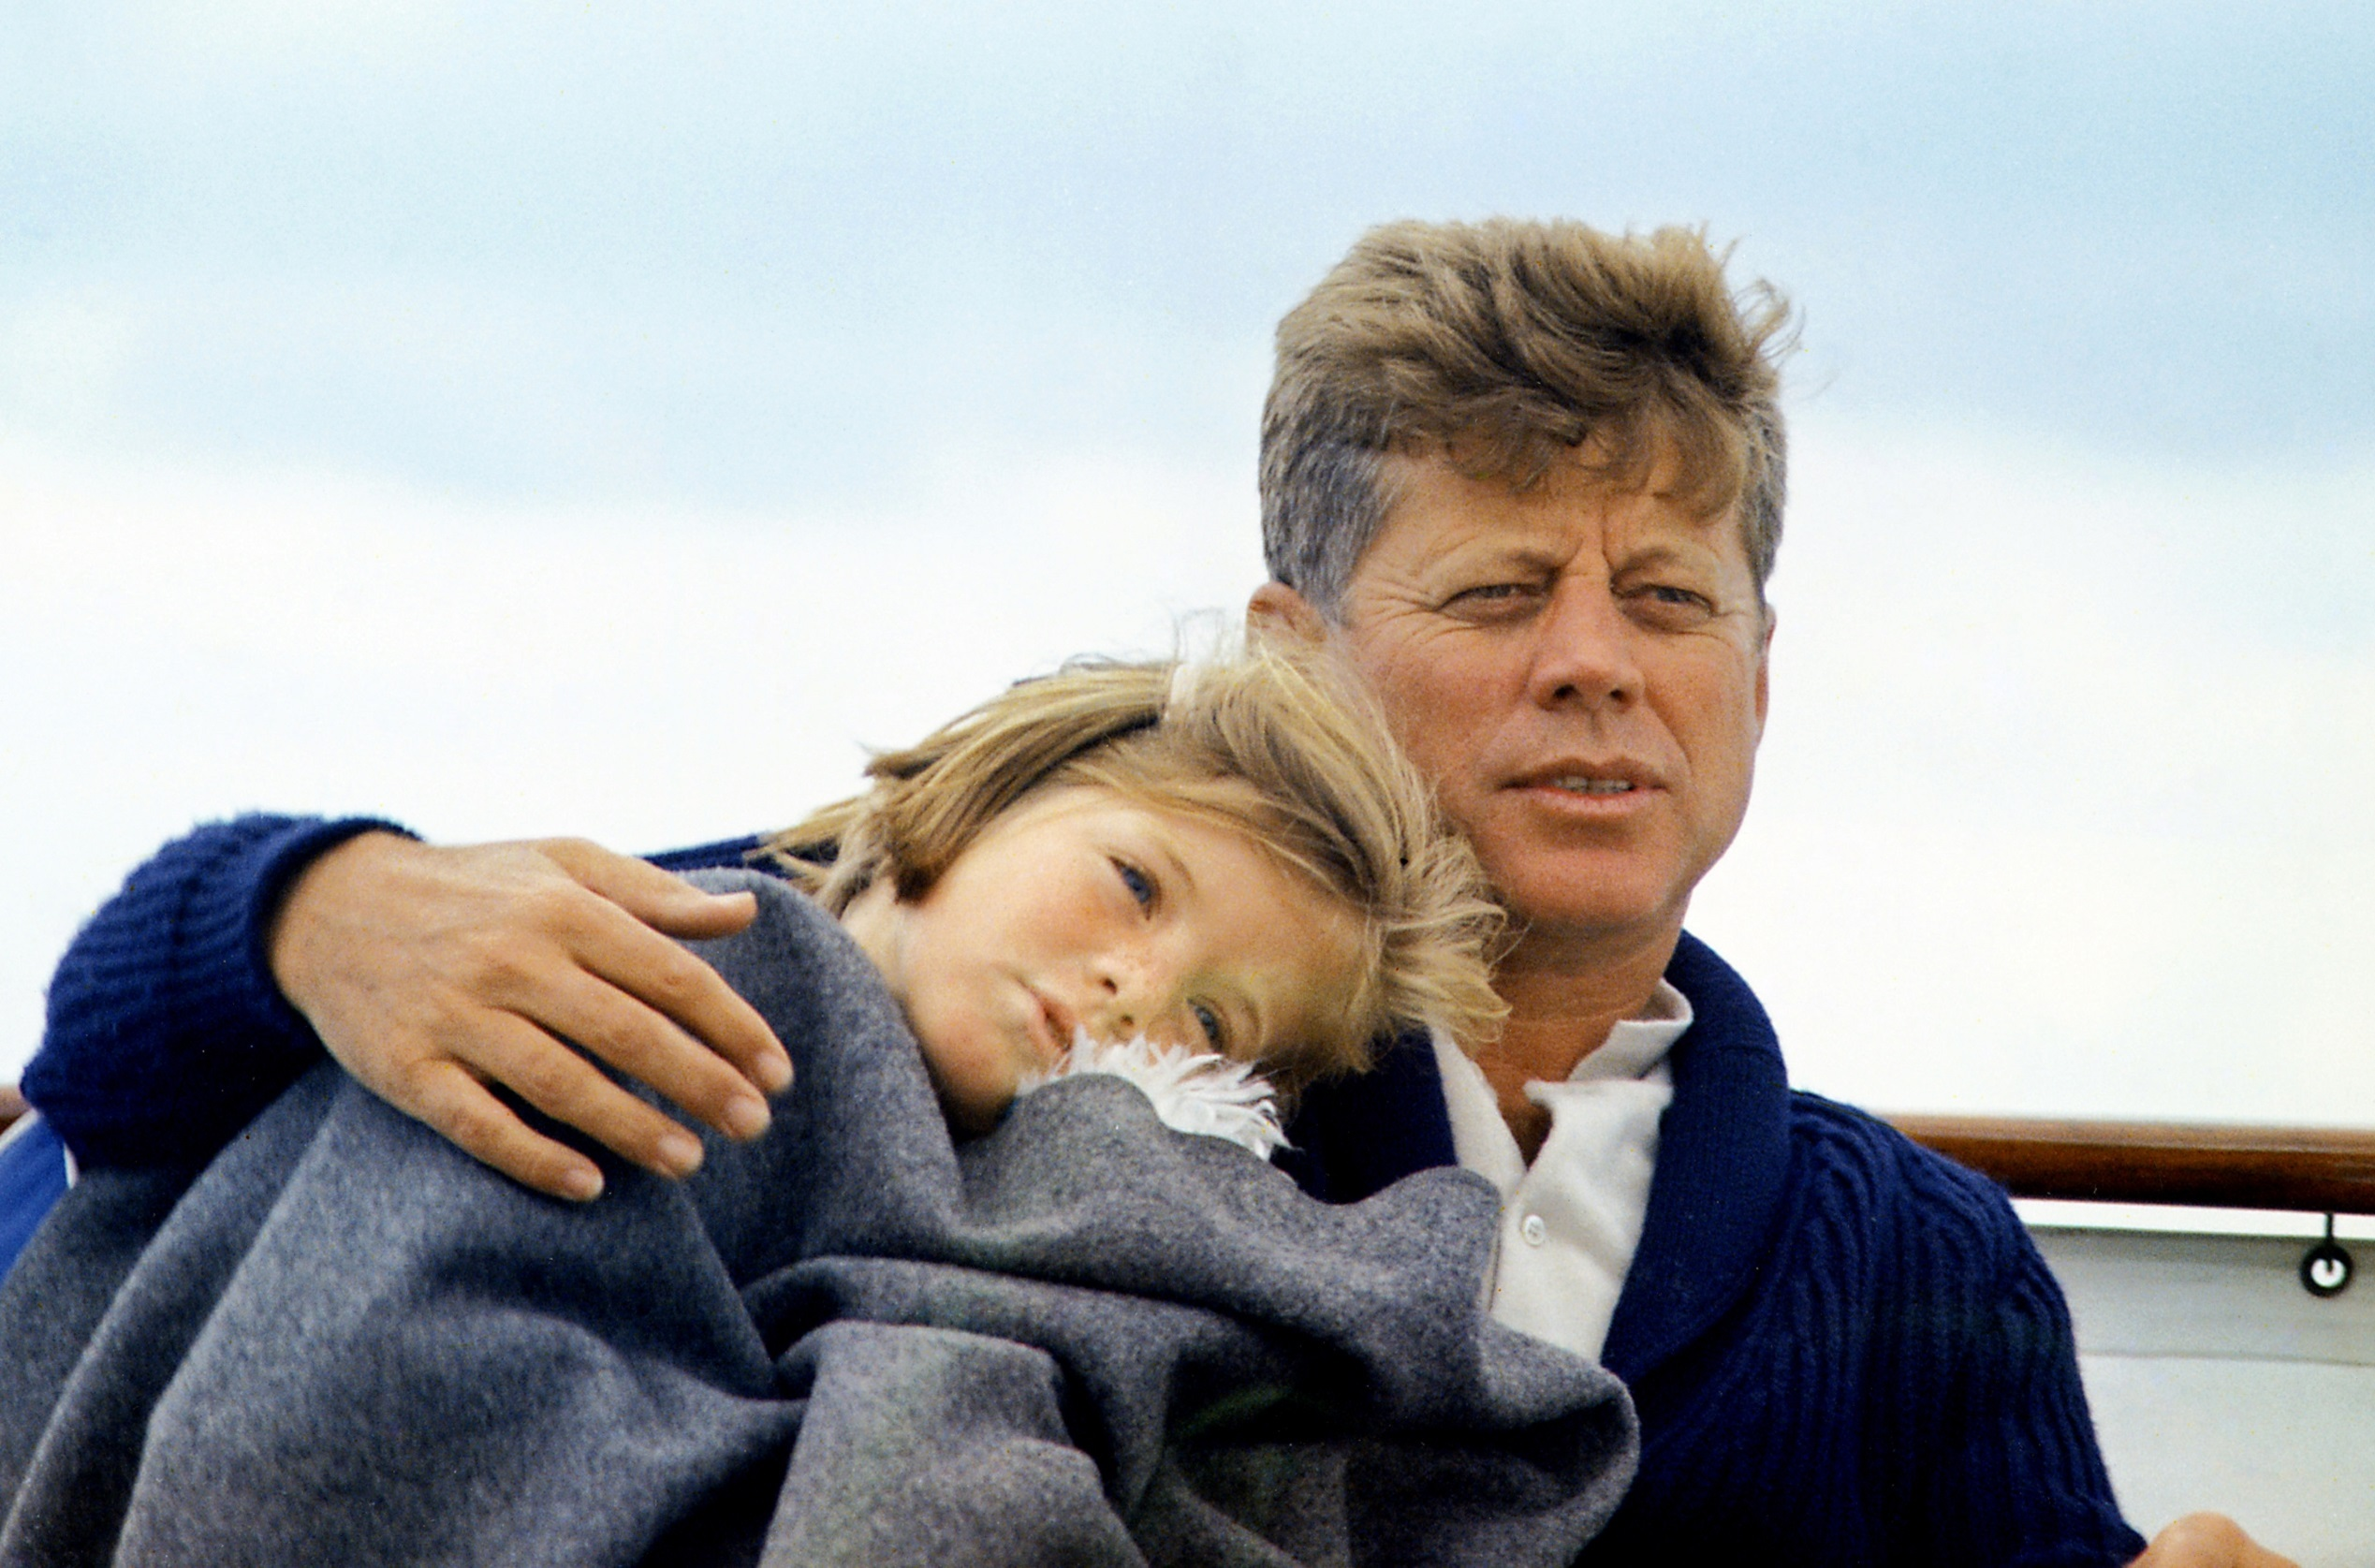 Kennedy's Family, President, Us, Kennedy, F, HQ Photo